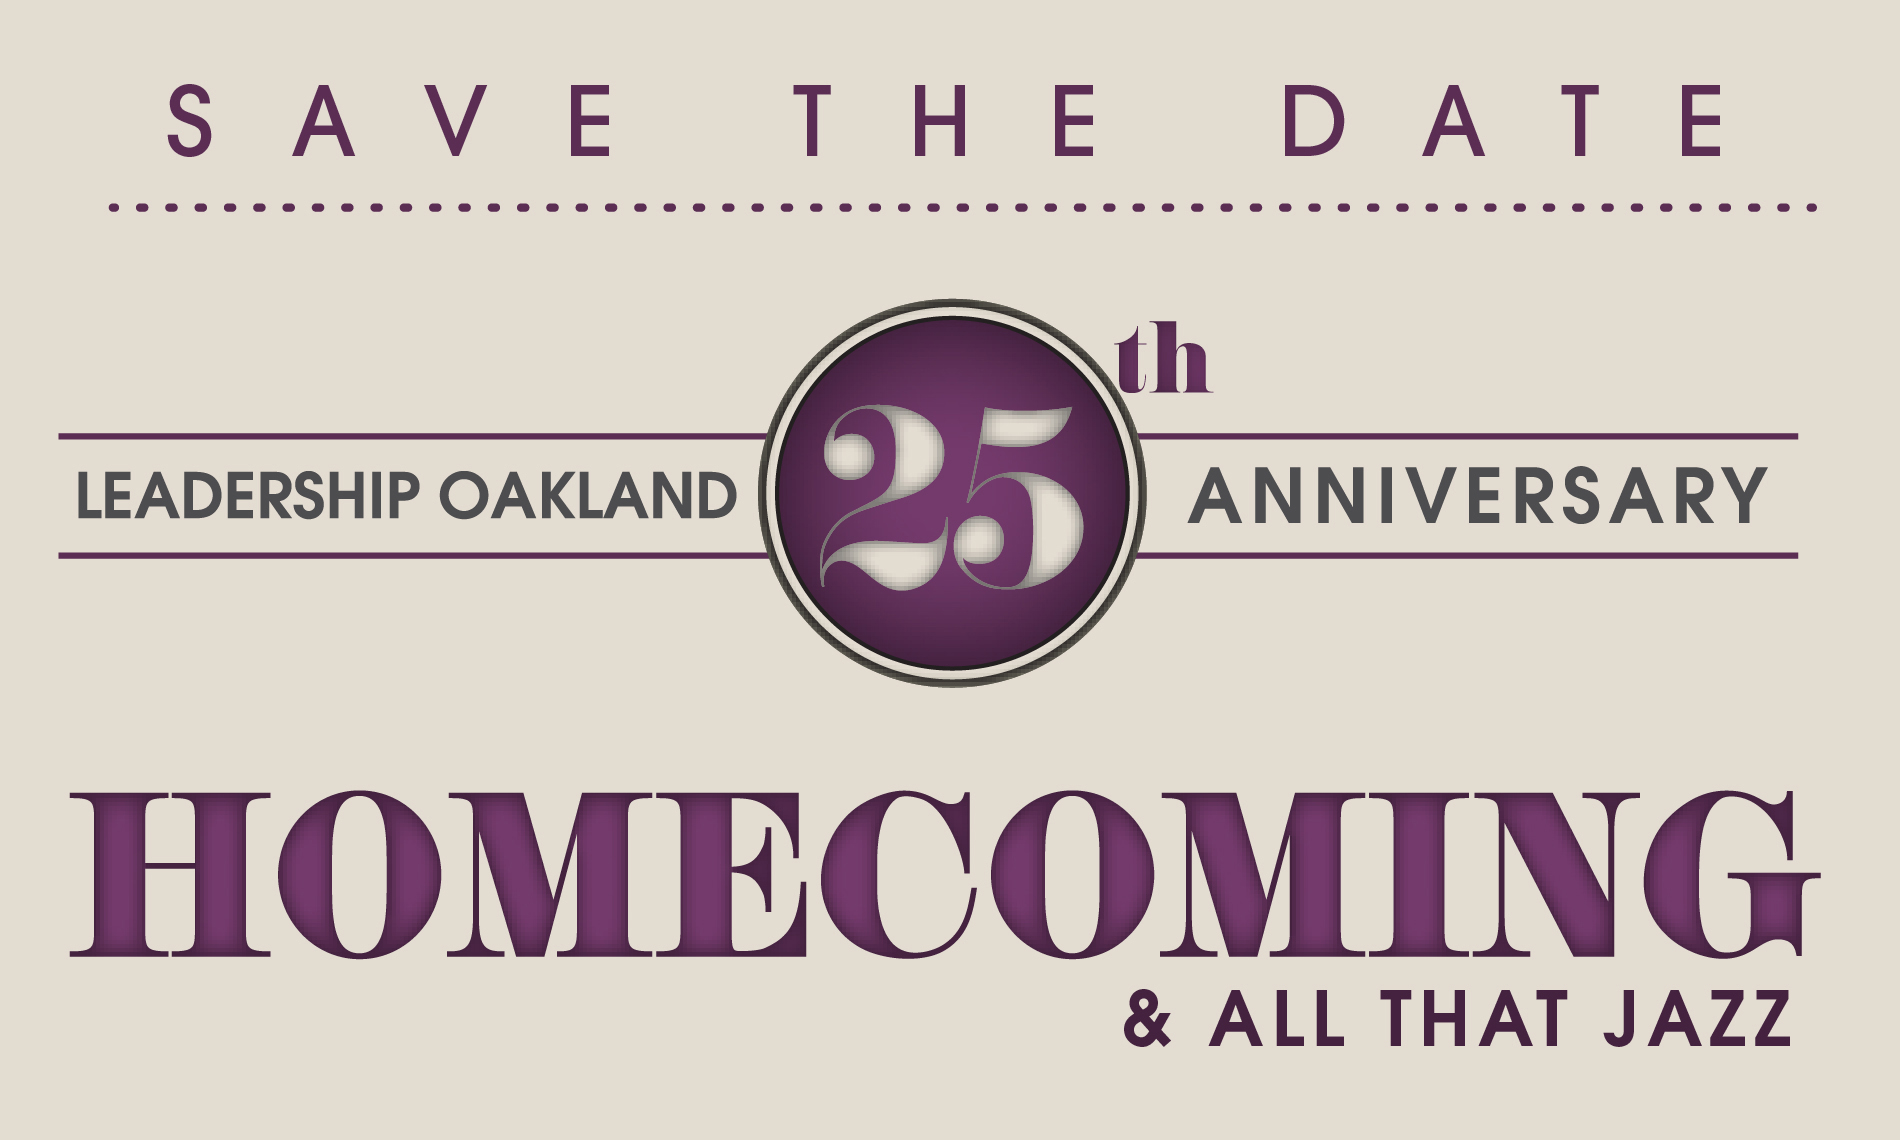 25th Anniversary - Save the Date